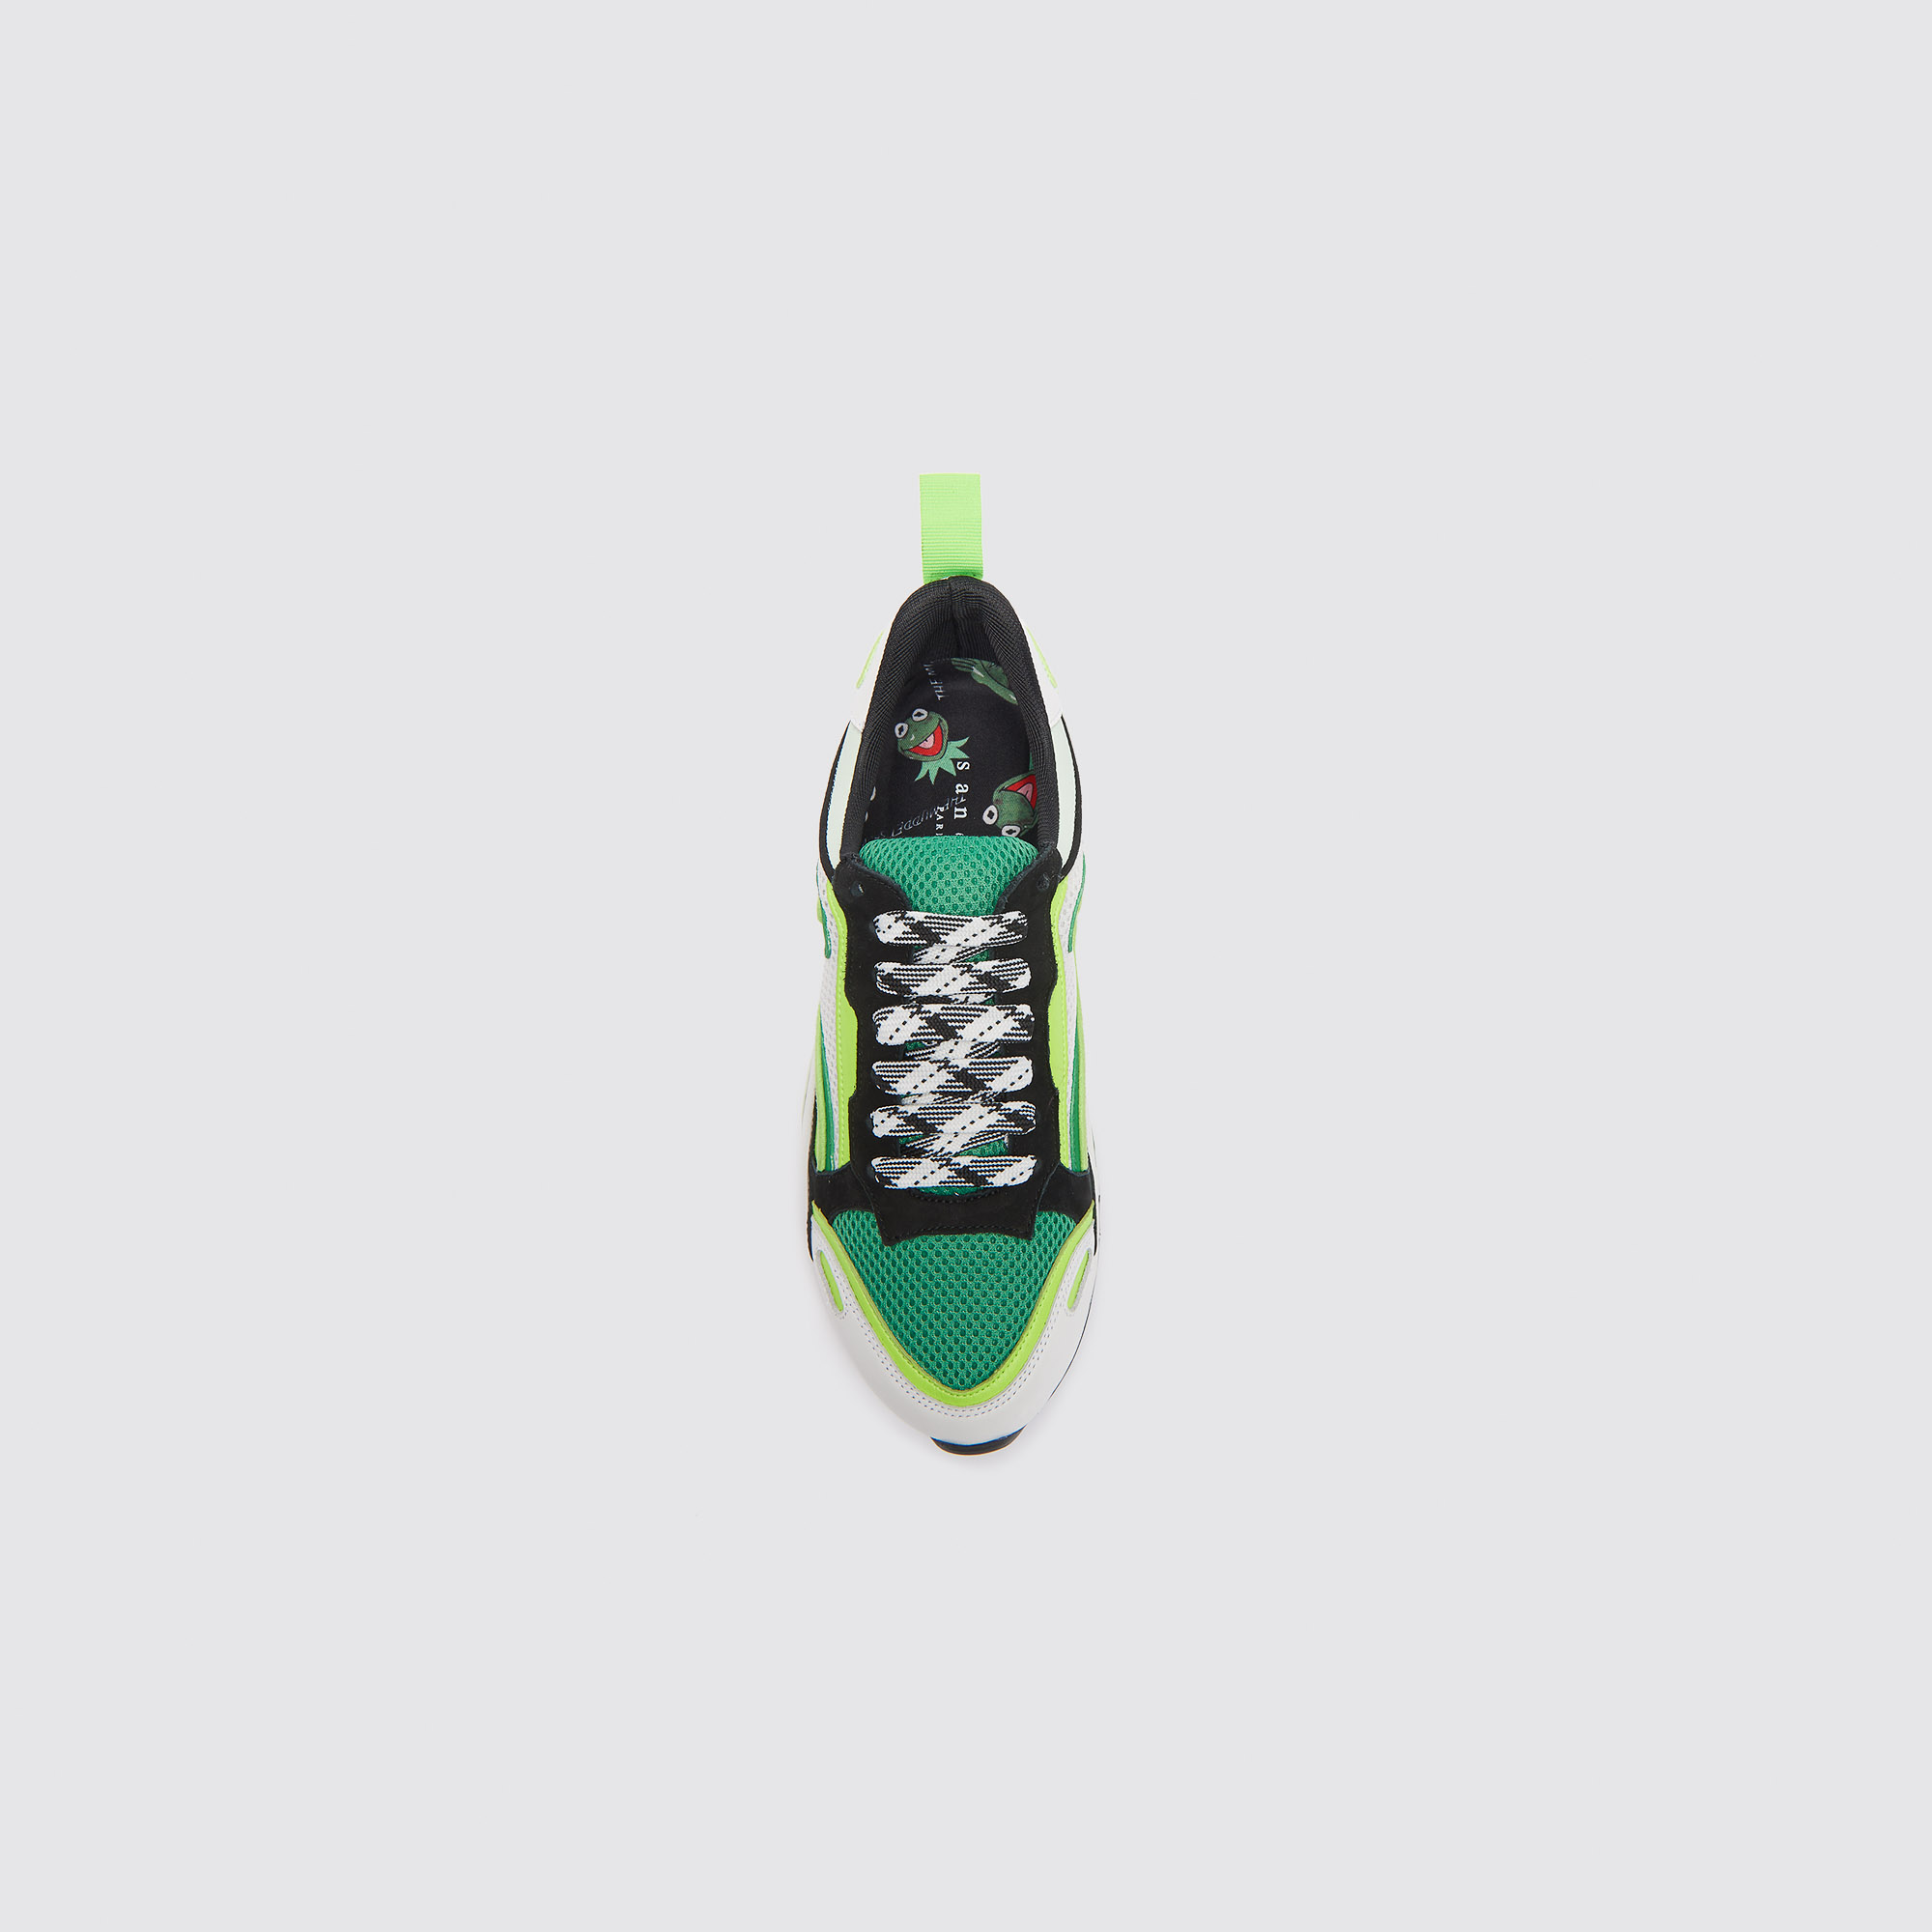 0683048a30 ... Flame sneakers   Shoes color Vert fluo ...